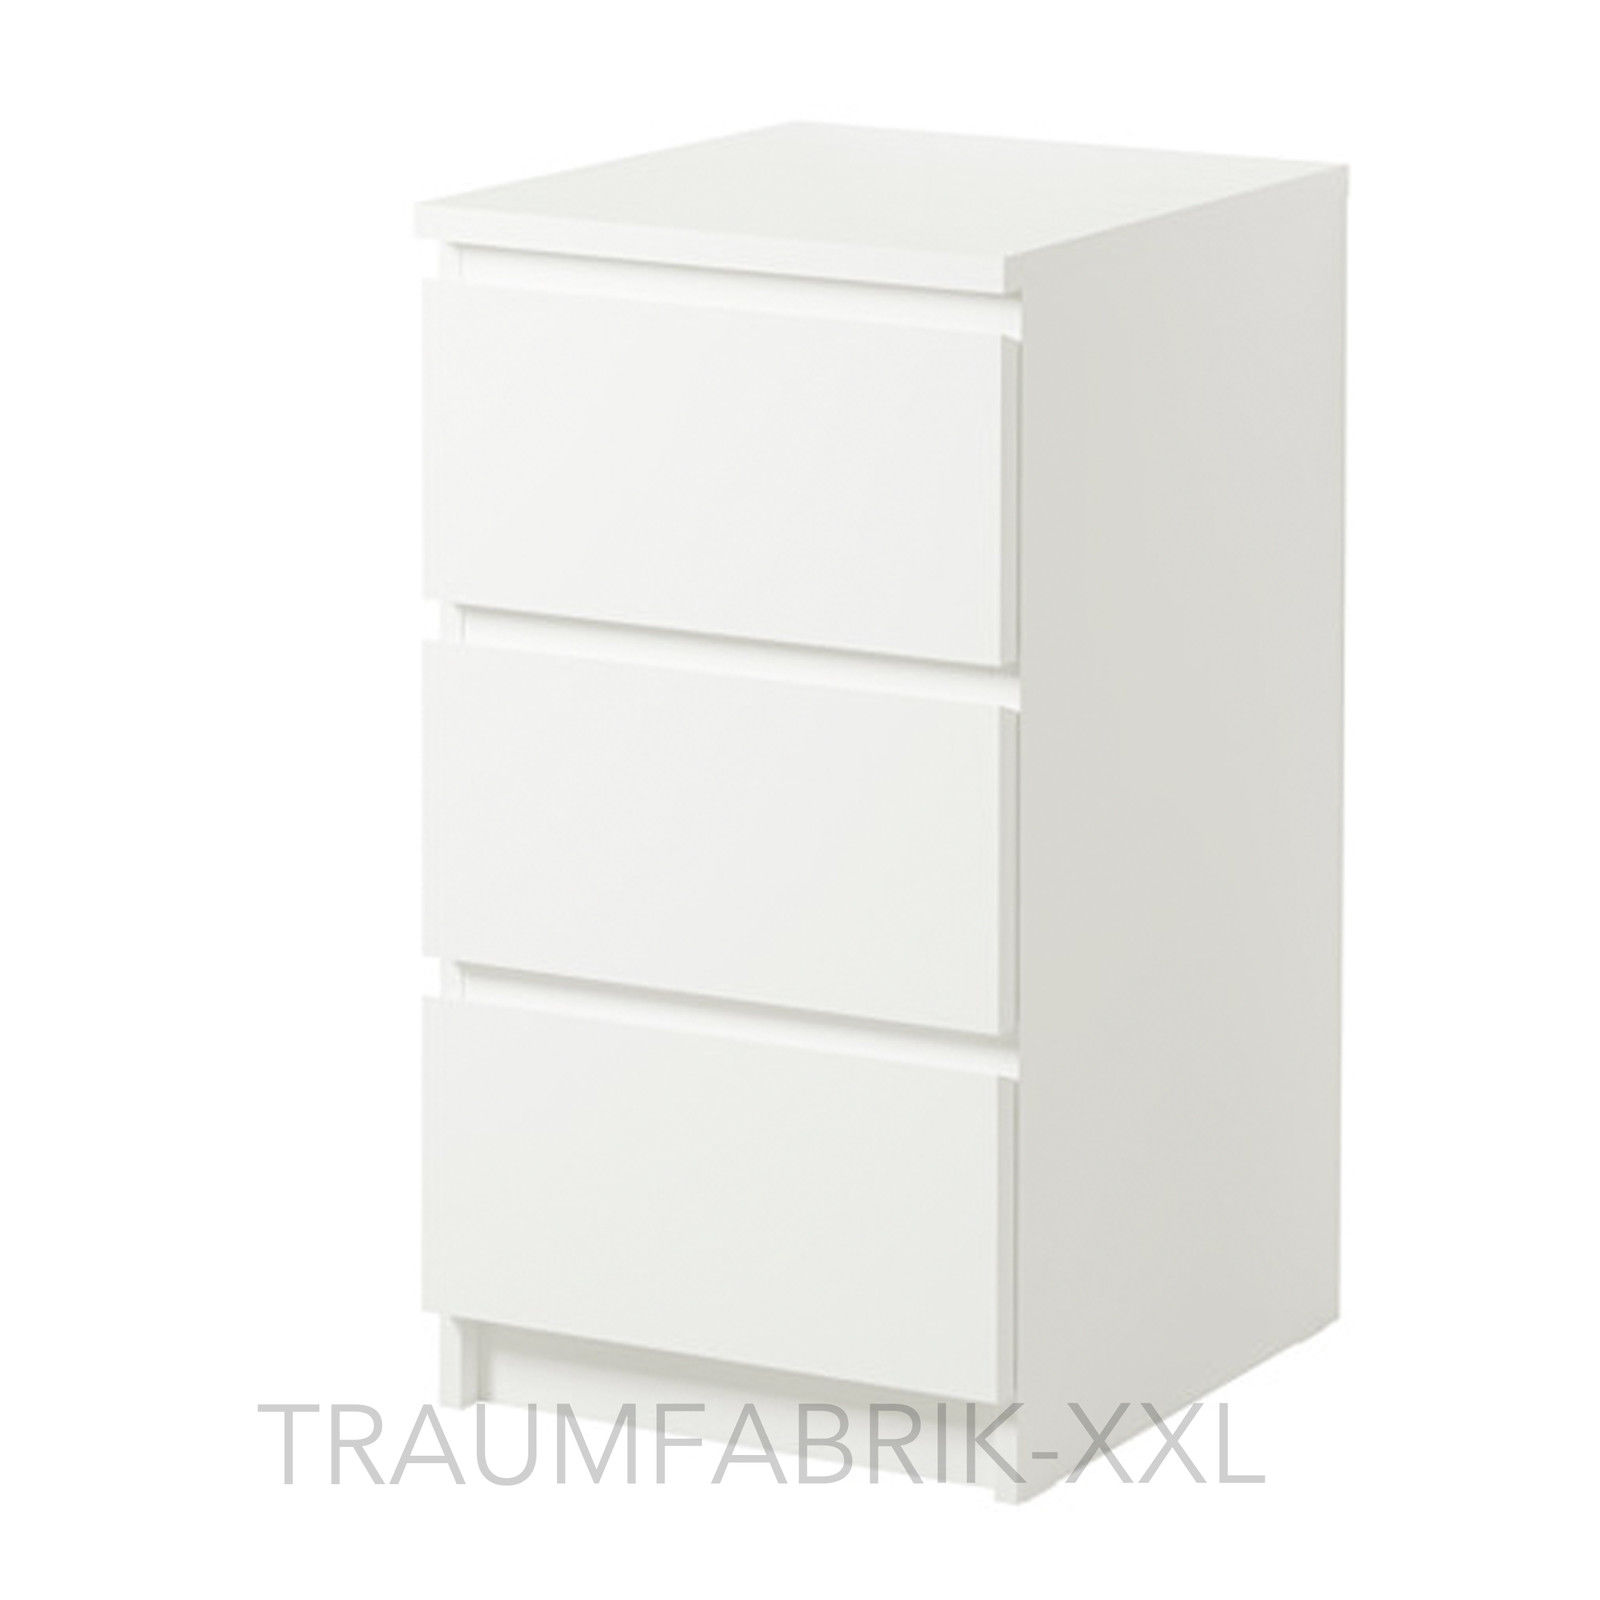 Malm Regal Ikea Malm Regal Ikea Regal Malm Dresser Is Voluntarily